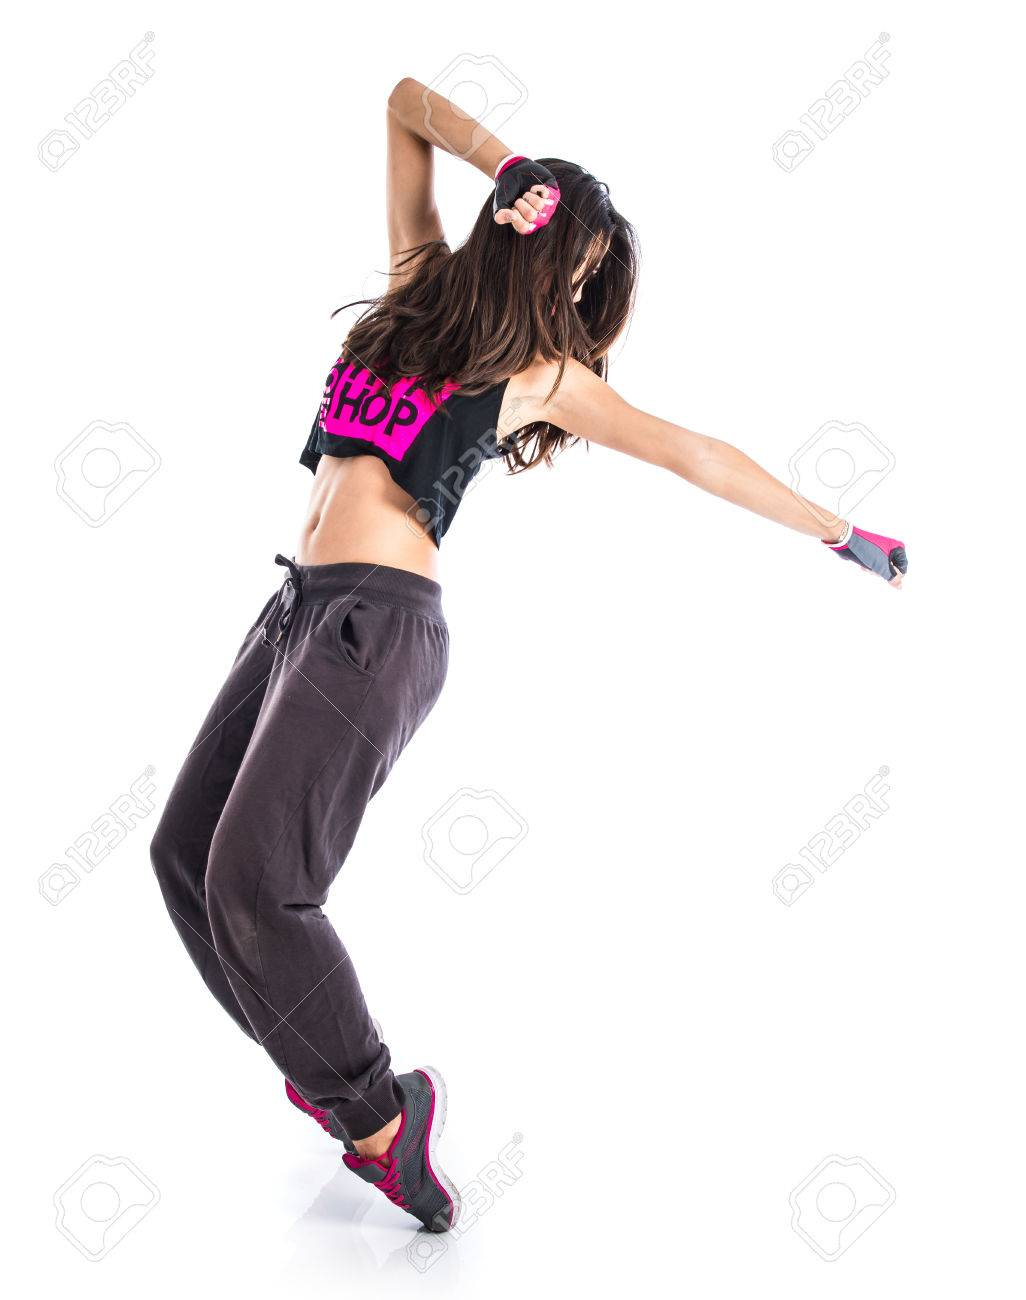 Teenager Girl Dancing Hip Hop Stock Photo Picture And Royalty Free Image Image 41205998